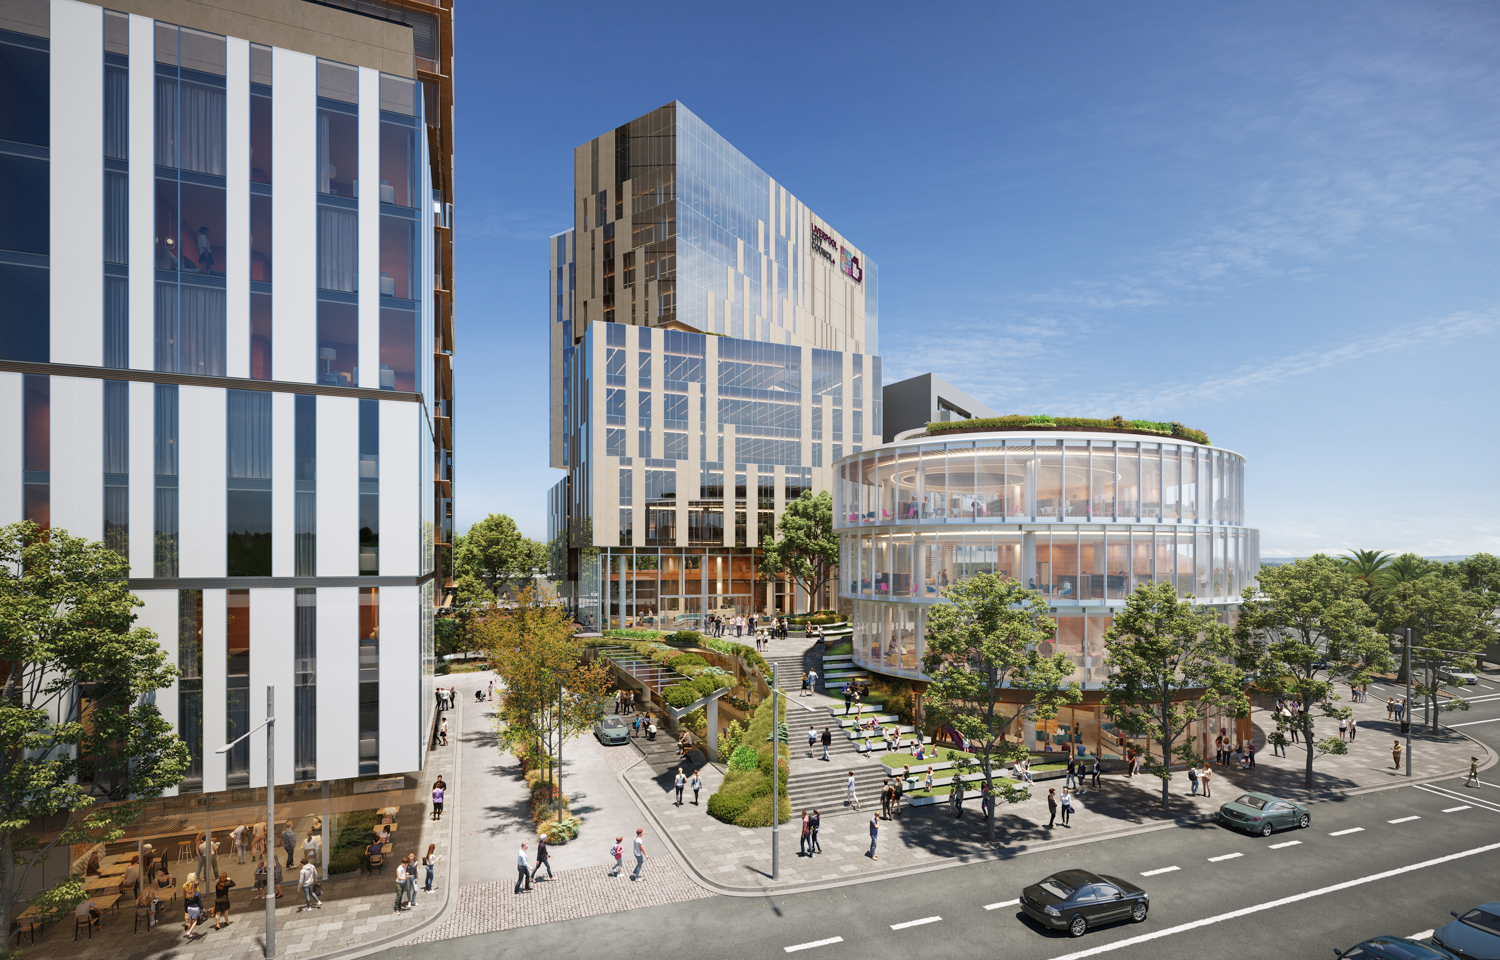 An artist's impression of the future Liverpool Civic Place mixed-use precinct.